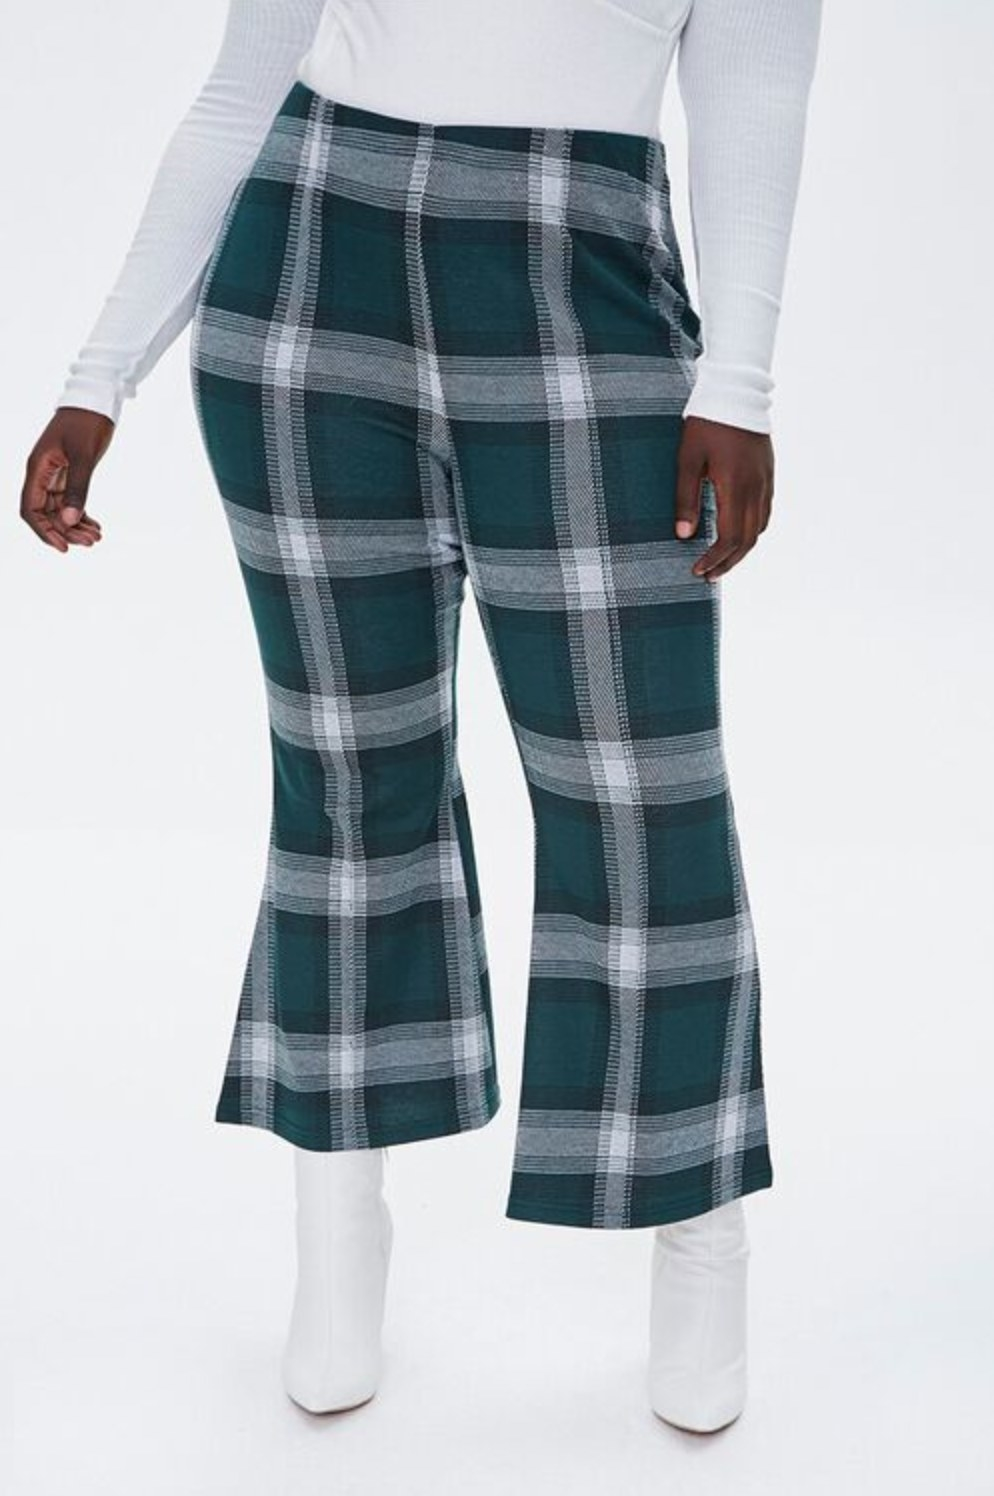 Model wearing the pants in hunter green from the waist down